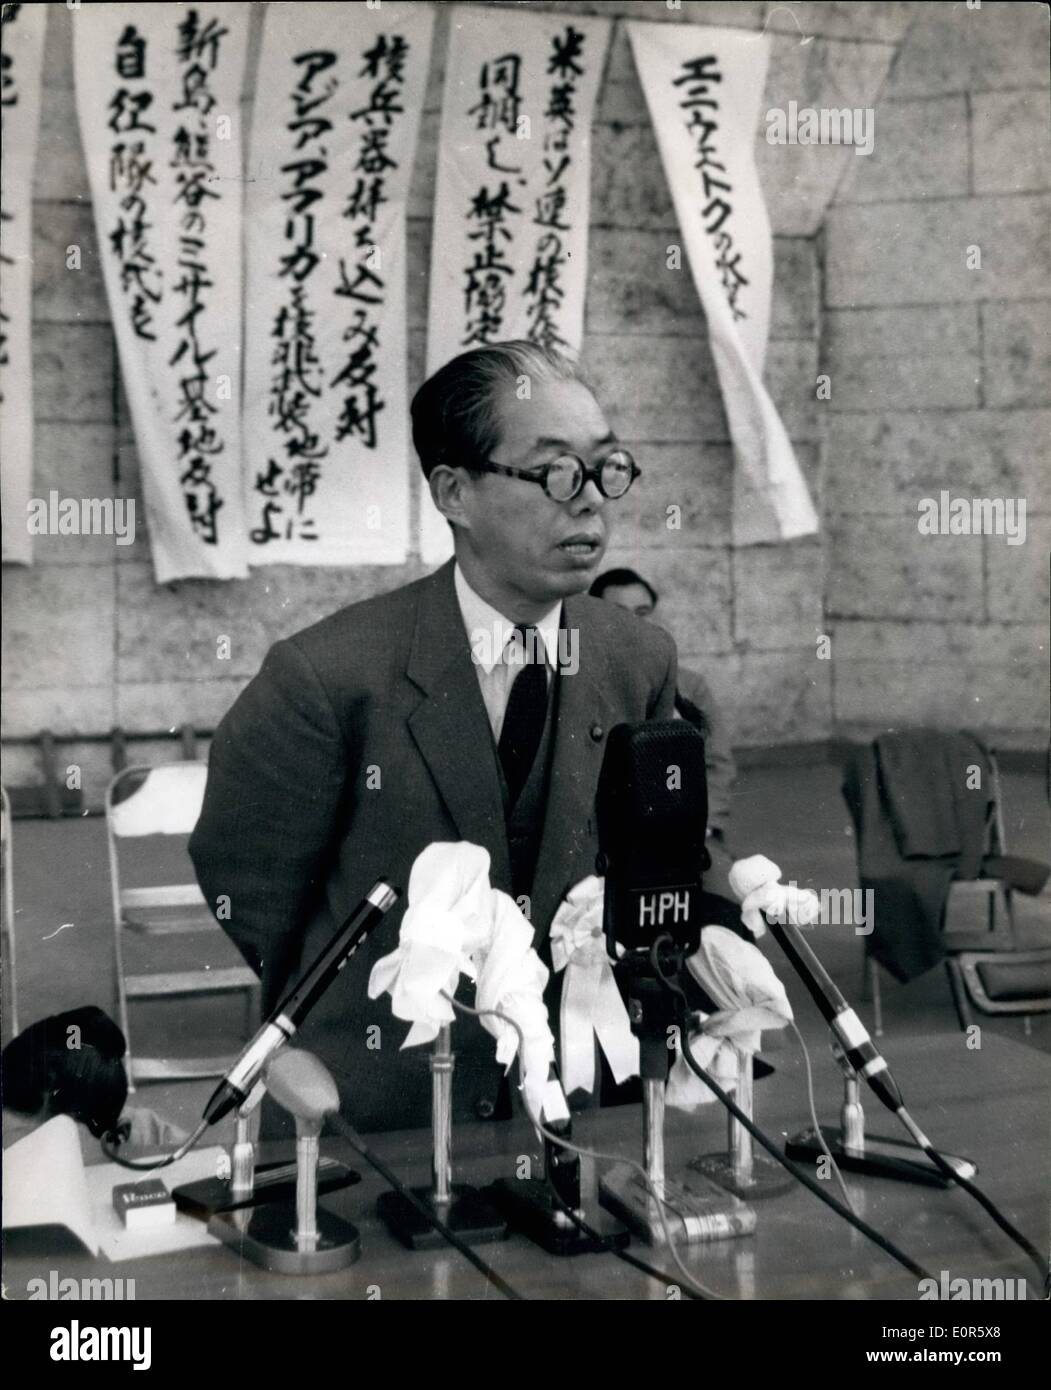 Apr. 04, 1958 - Anti Nuclear Rally in Tokyo. A mass rally attended by more than 6,000 members of the general council of Japan Trade Unions, Japan against Atomic and Hydrogen bombs, National federation of student self - government associations and other affiliated organisations , was held at Hibiya Park, Tokyo, in protest against the use of Japan as a nuclear base. The rally approved a resolution against nuclear weapons which will be delivered to the governments of the U.S - Stock Image